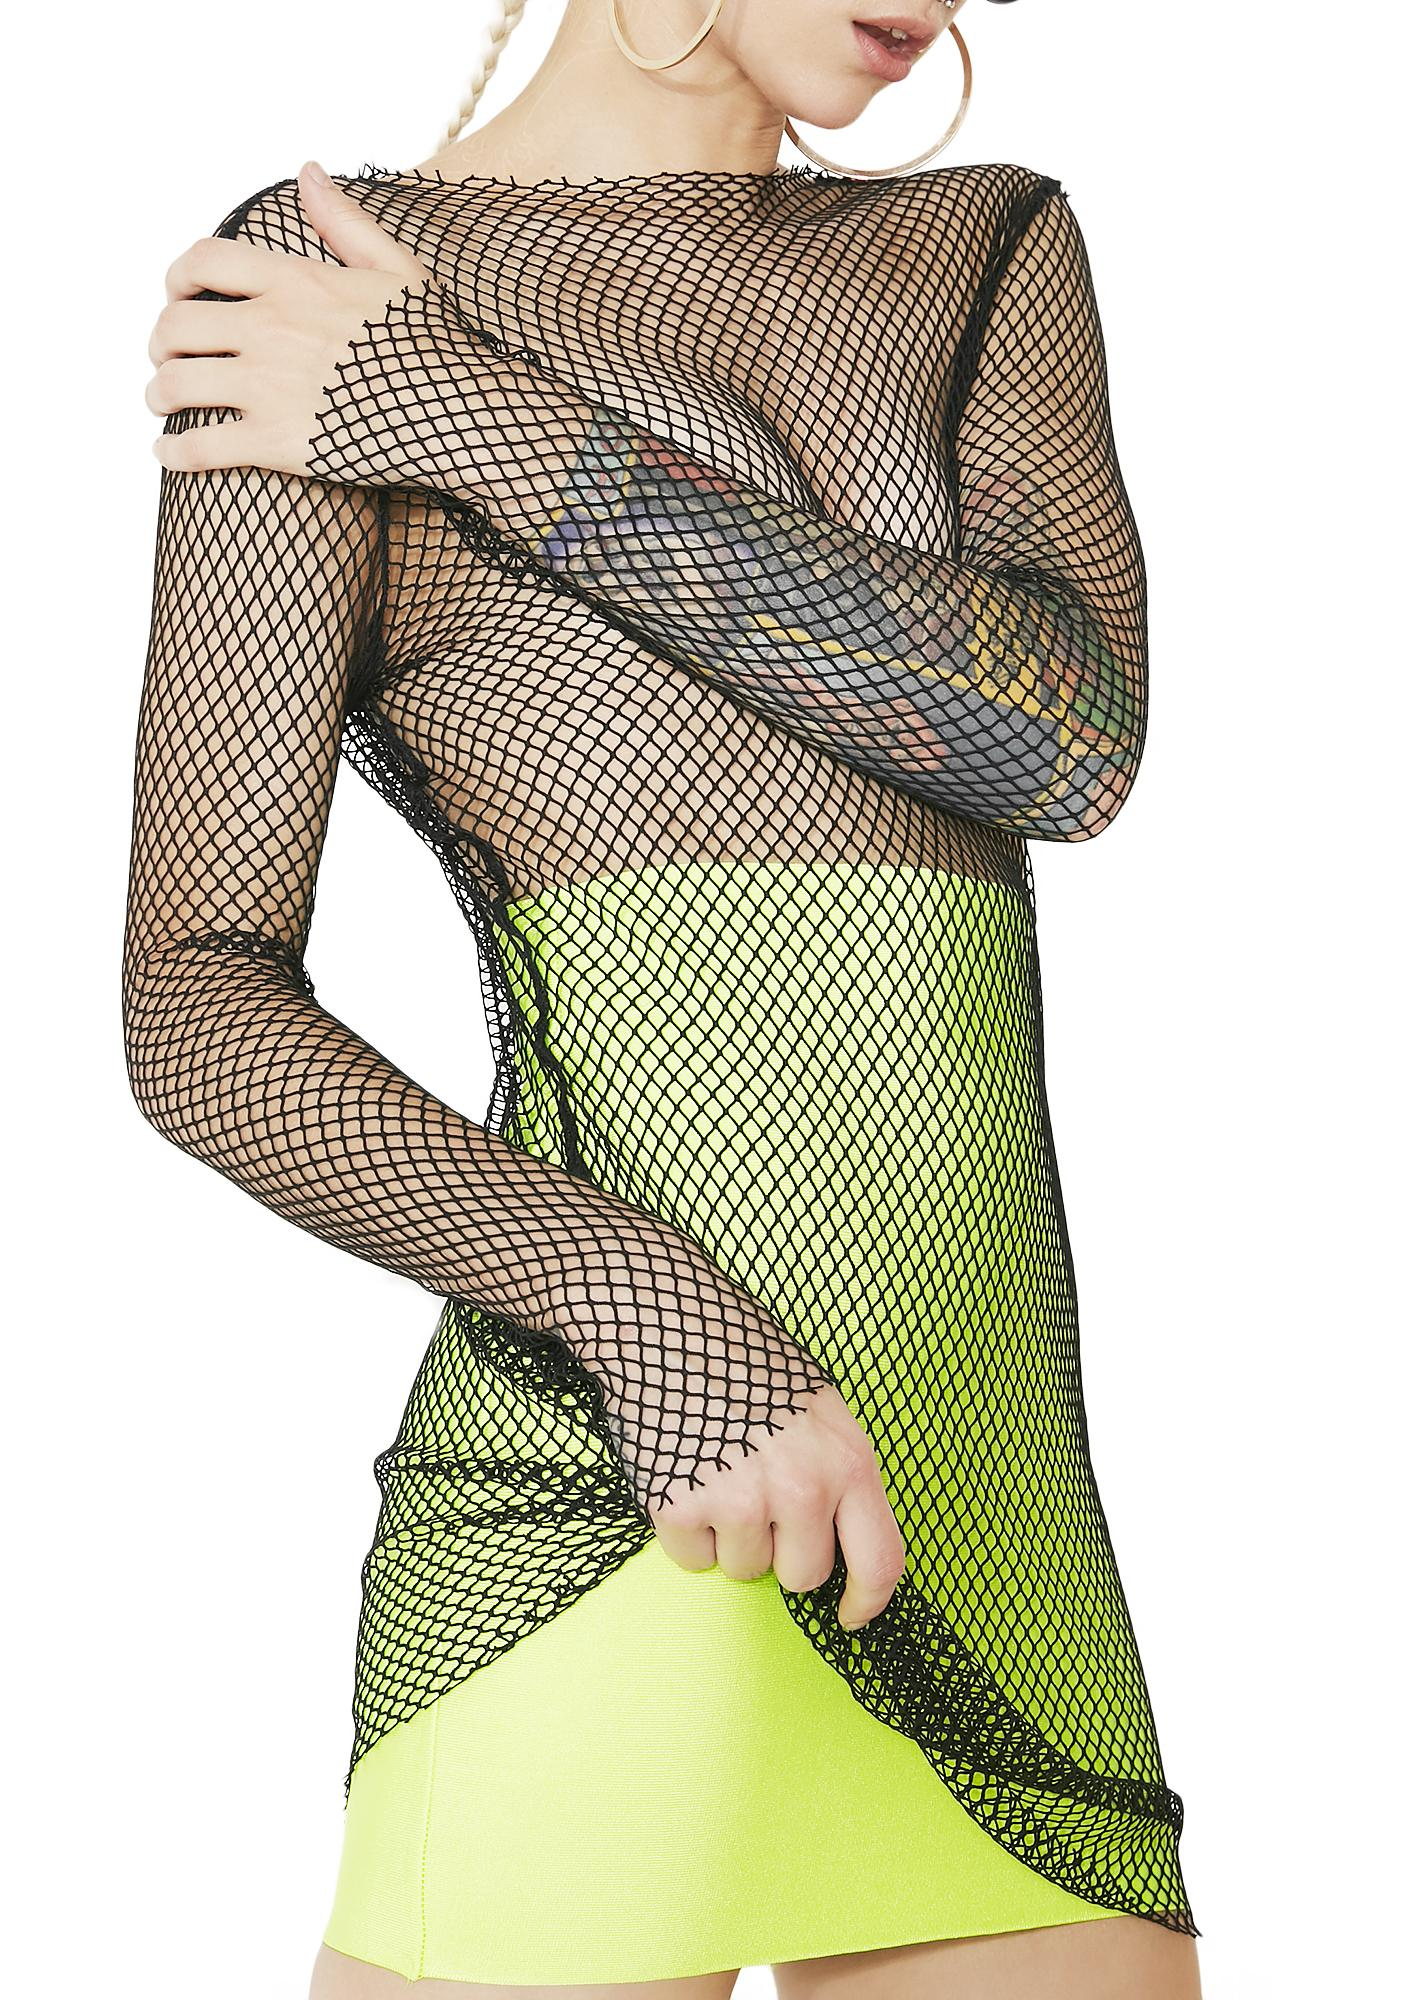 Sneak Peek Fishnet Mini Dress